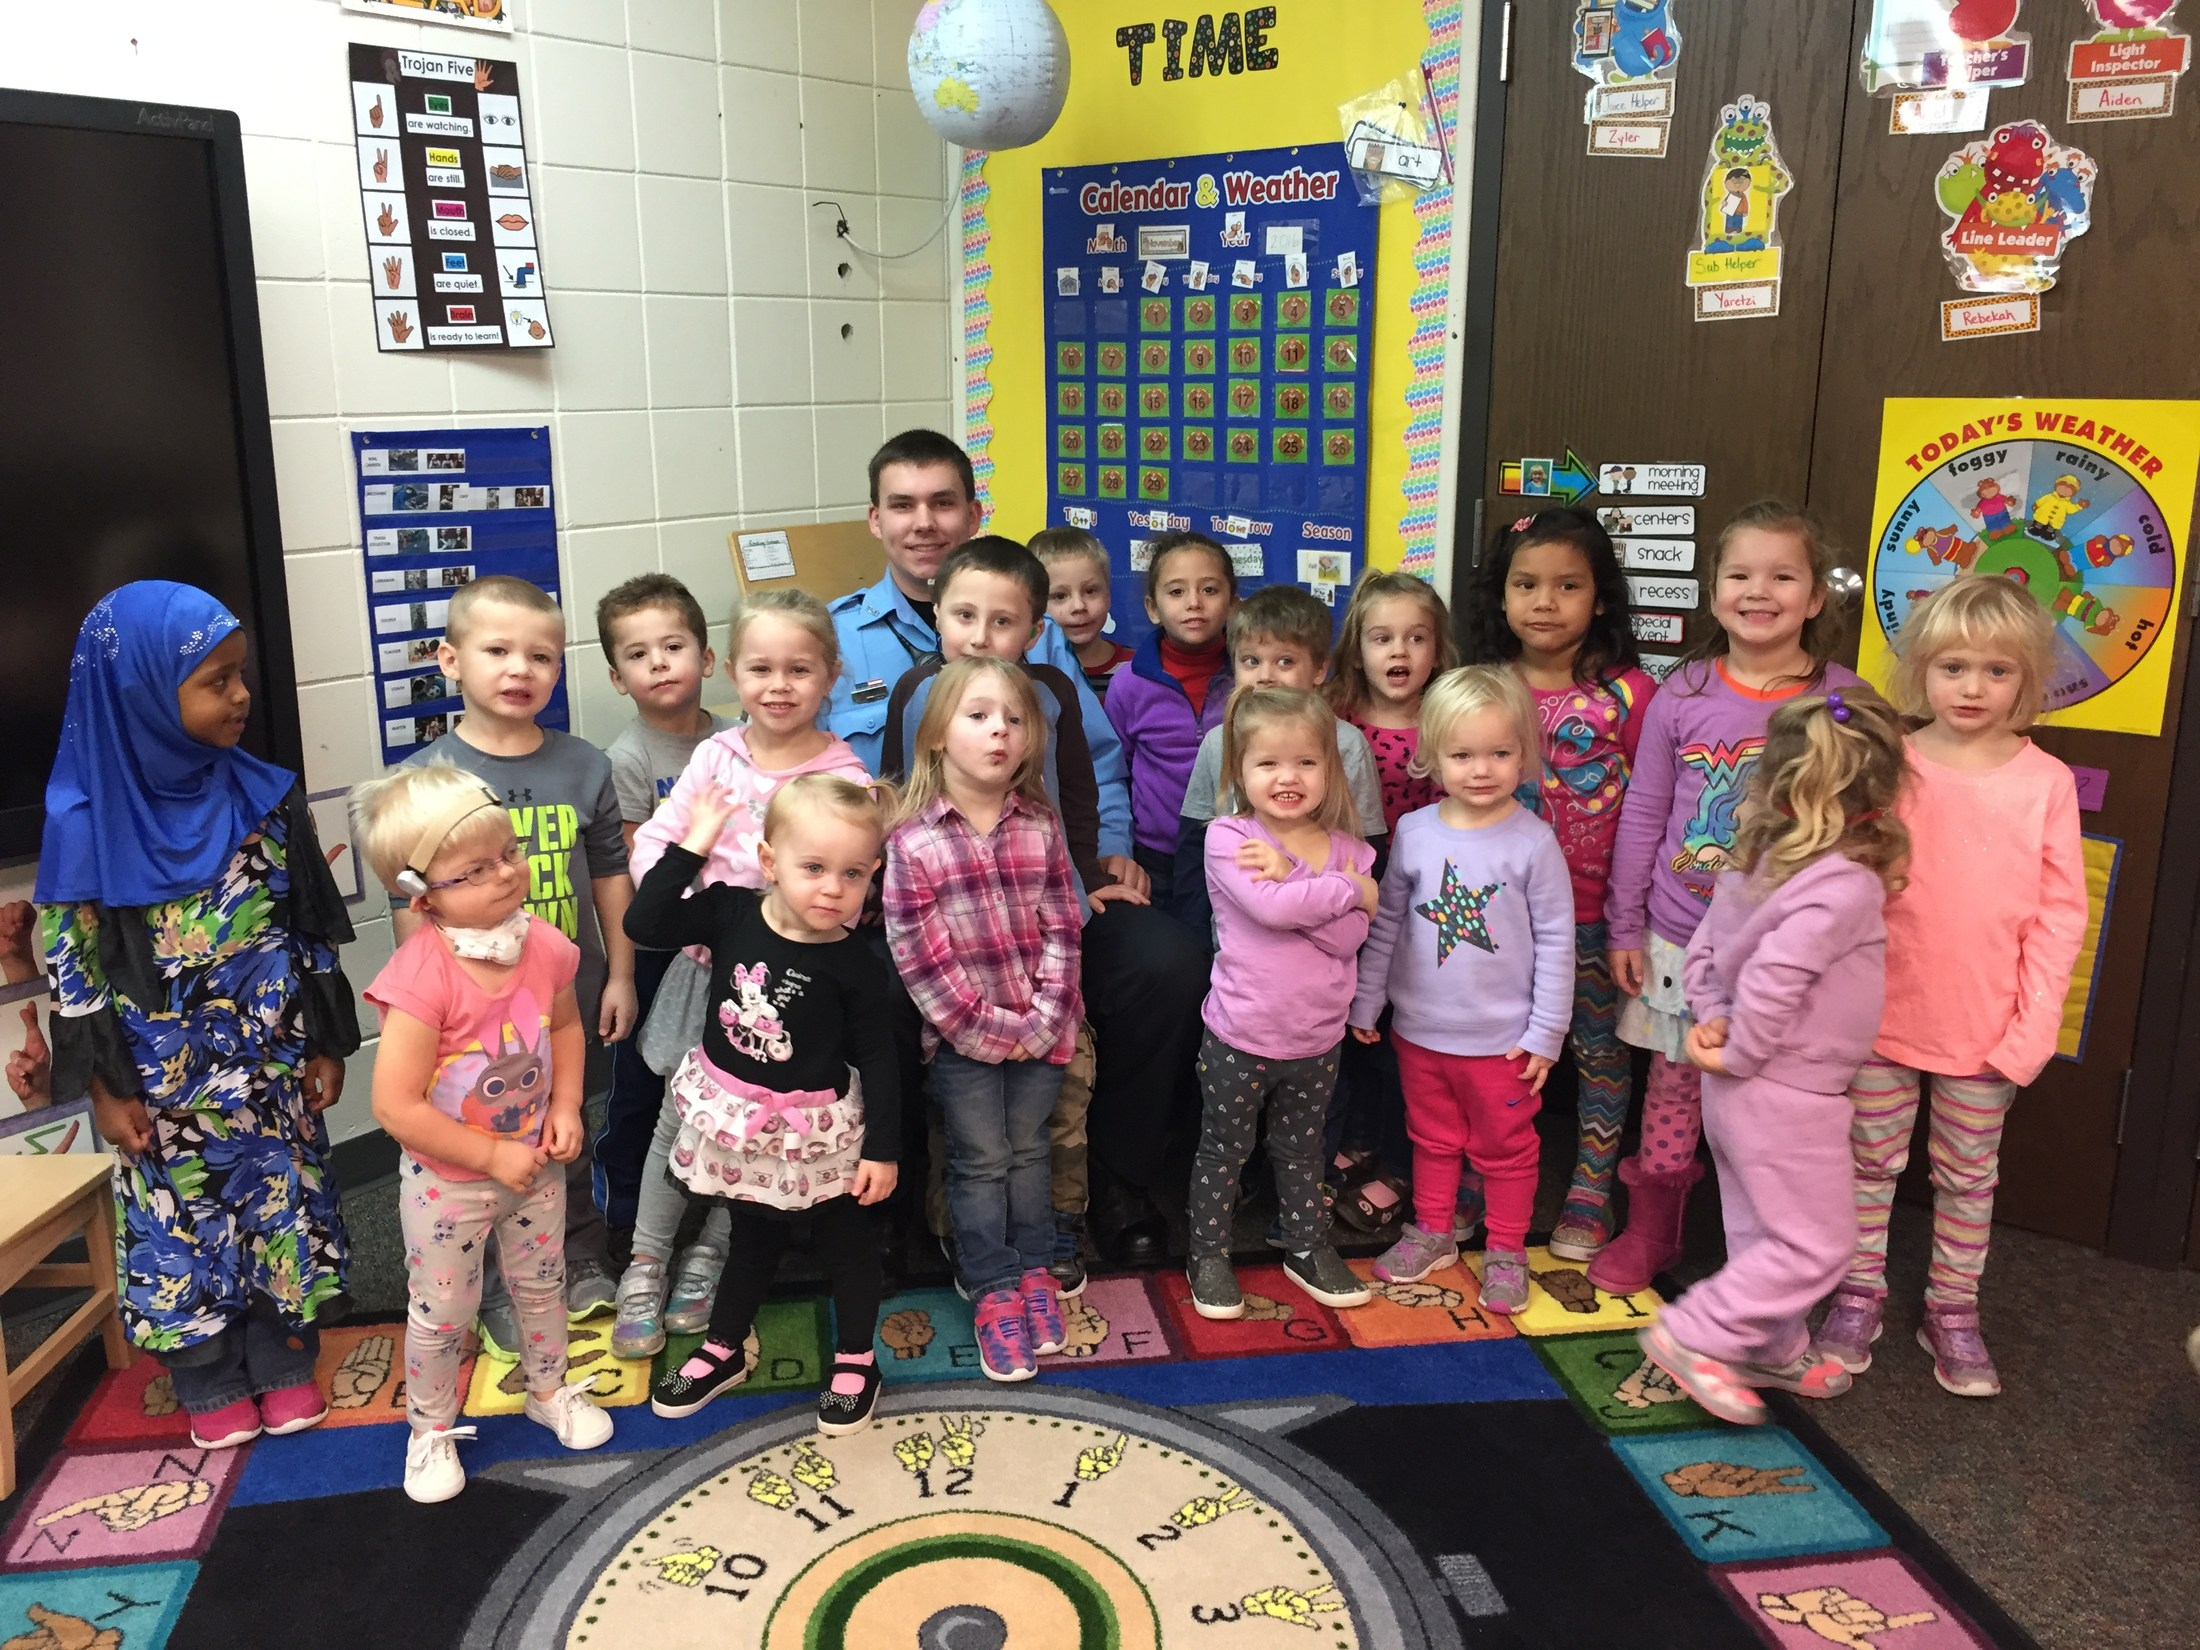 A group of 18 preschool students standing with a police officer in the classroom.